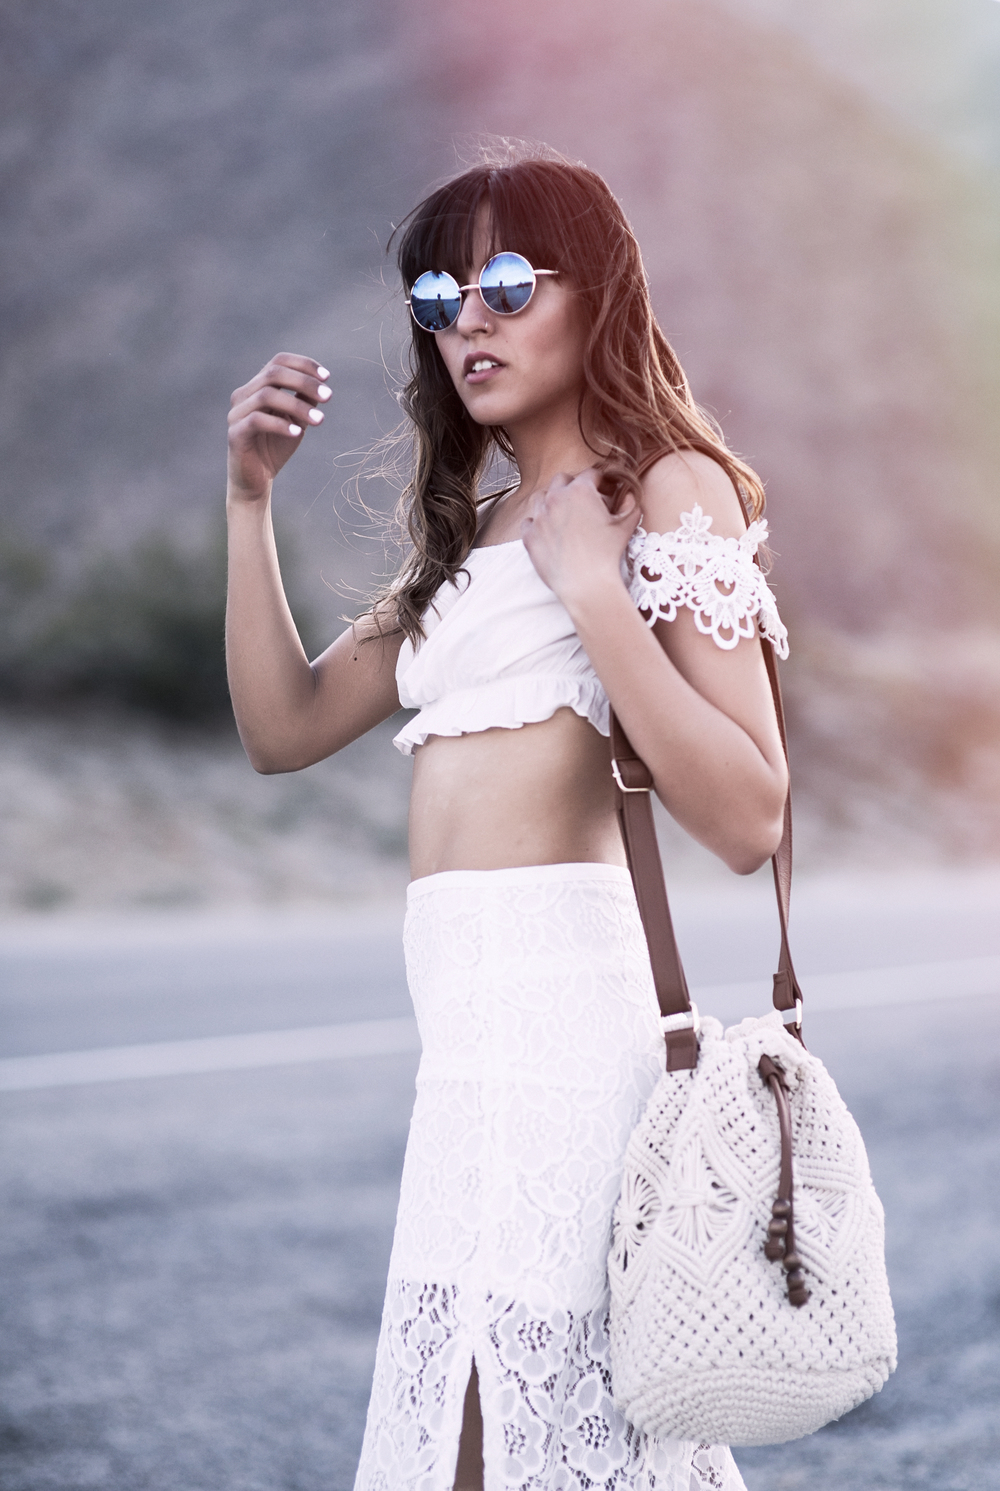 raquel-paiva-coachella-fashion-blogger